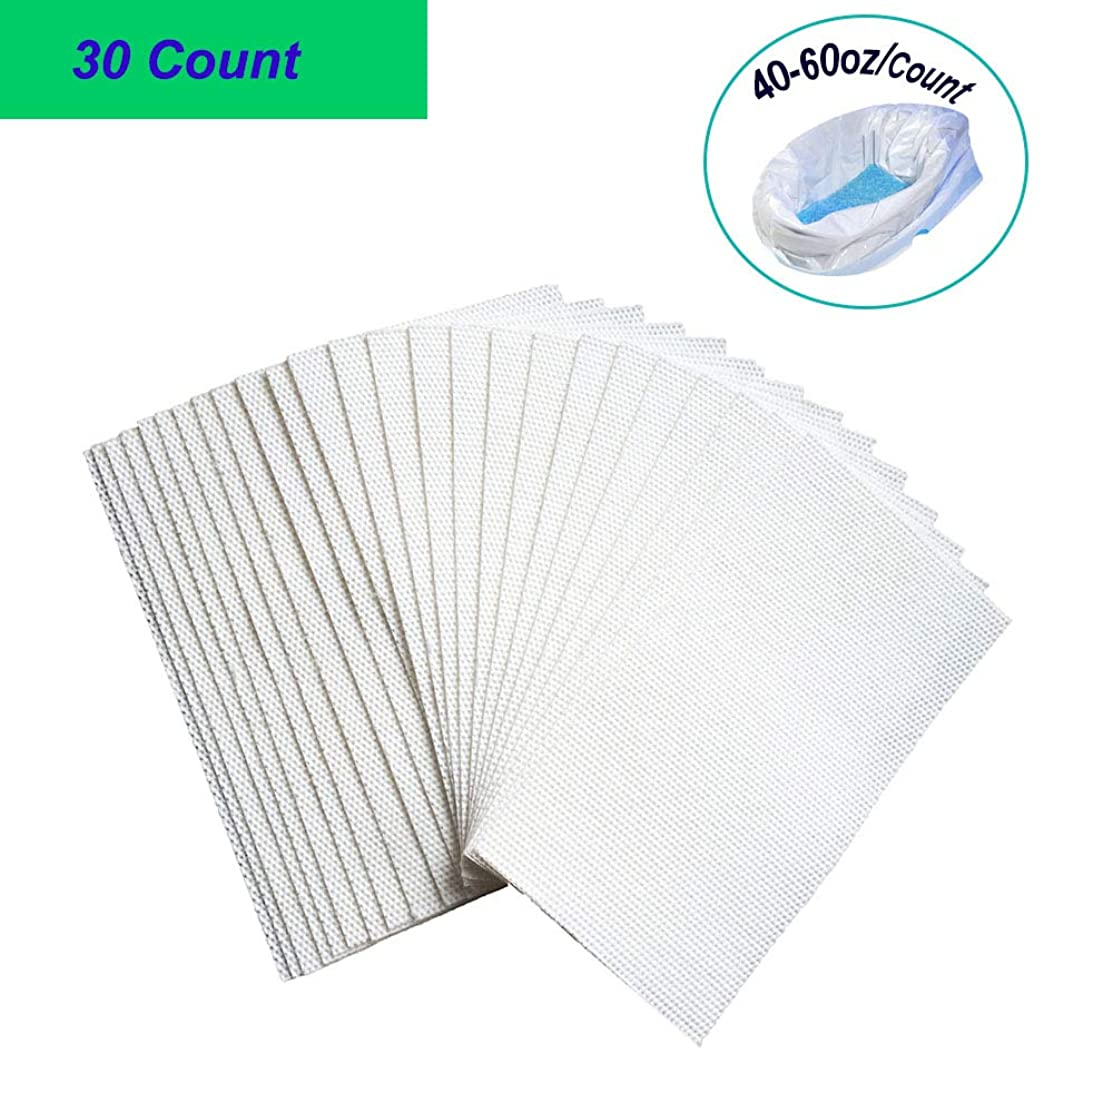 Super-Absorbent Pads for Commode Liners (40-60oz per Count), CuleedTec SAP Absorbency Commode Absorbent Pads for Bedside Commode Bags, Gelling Absorbent Pads, Liquid Absorber (30 Count)